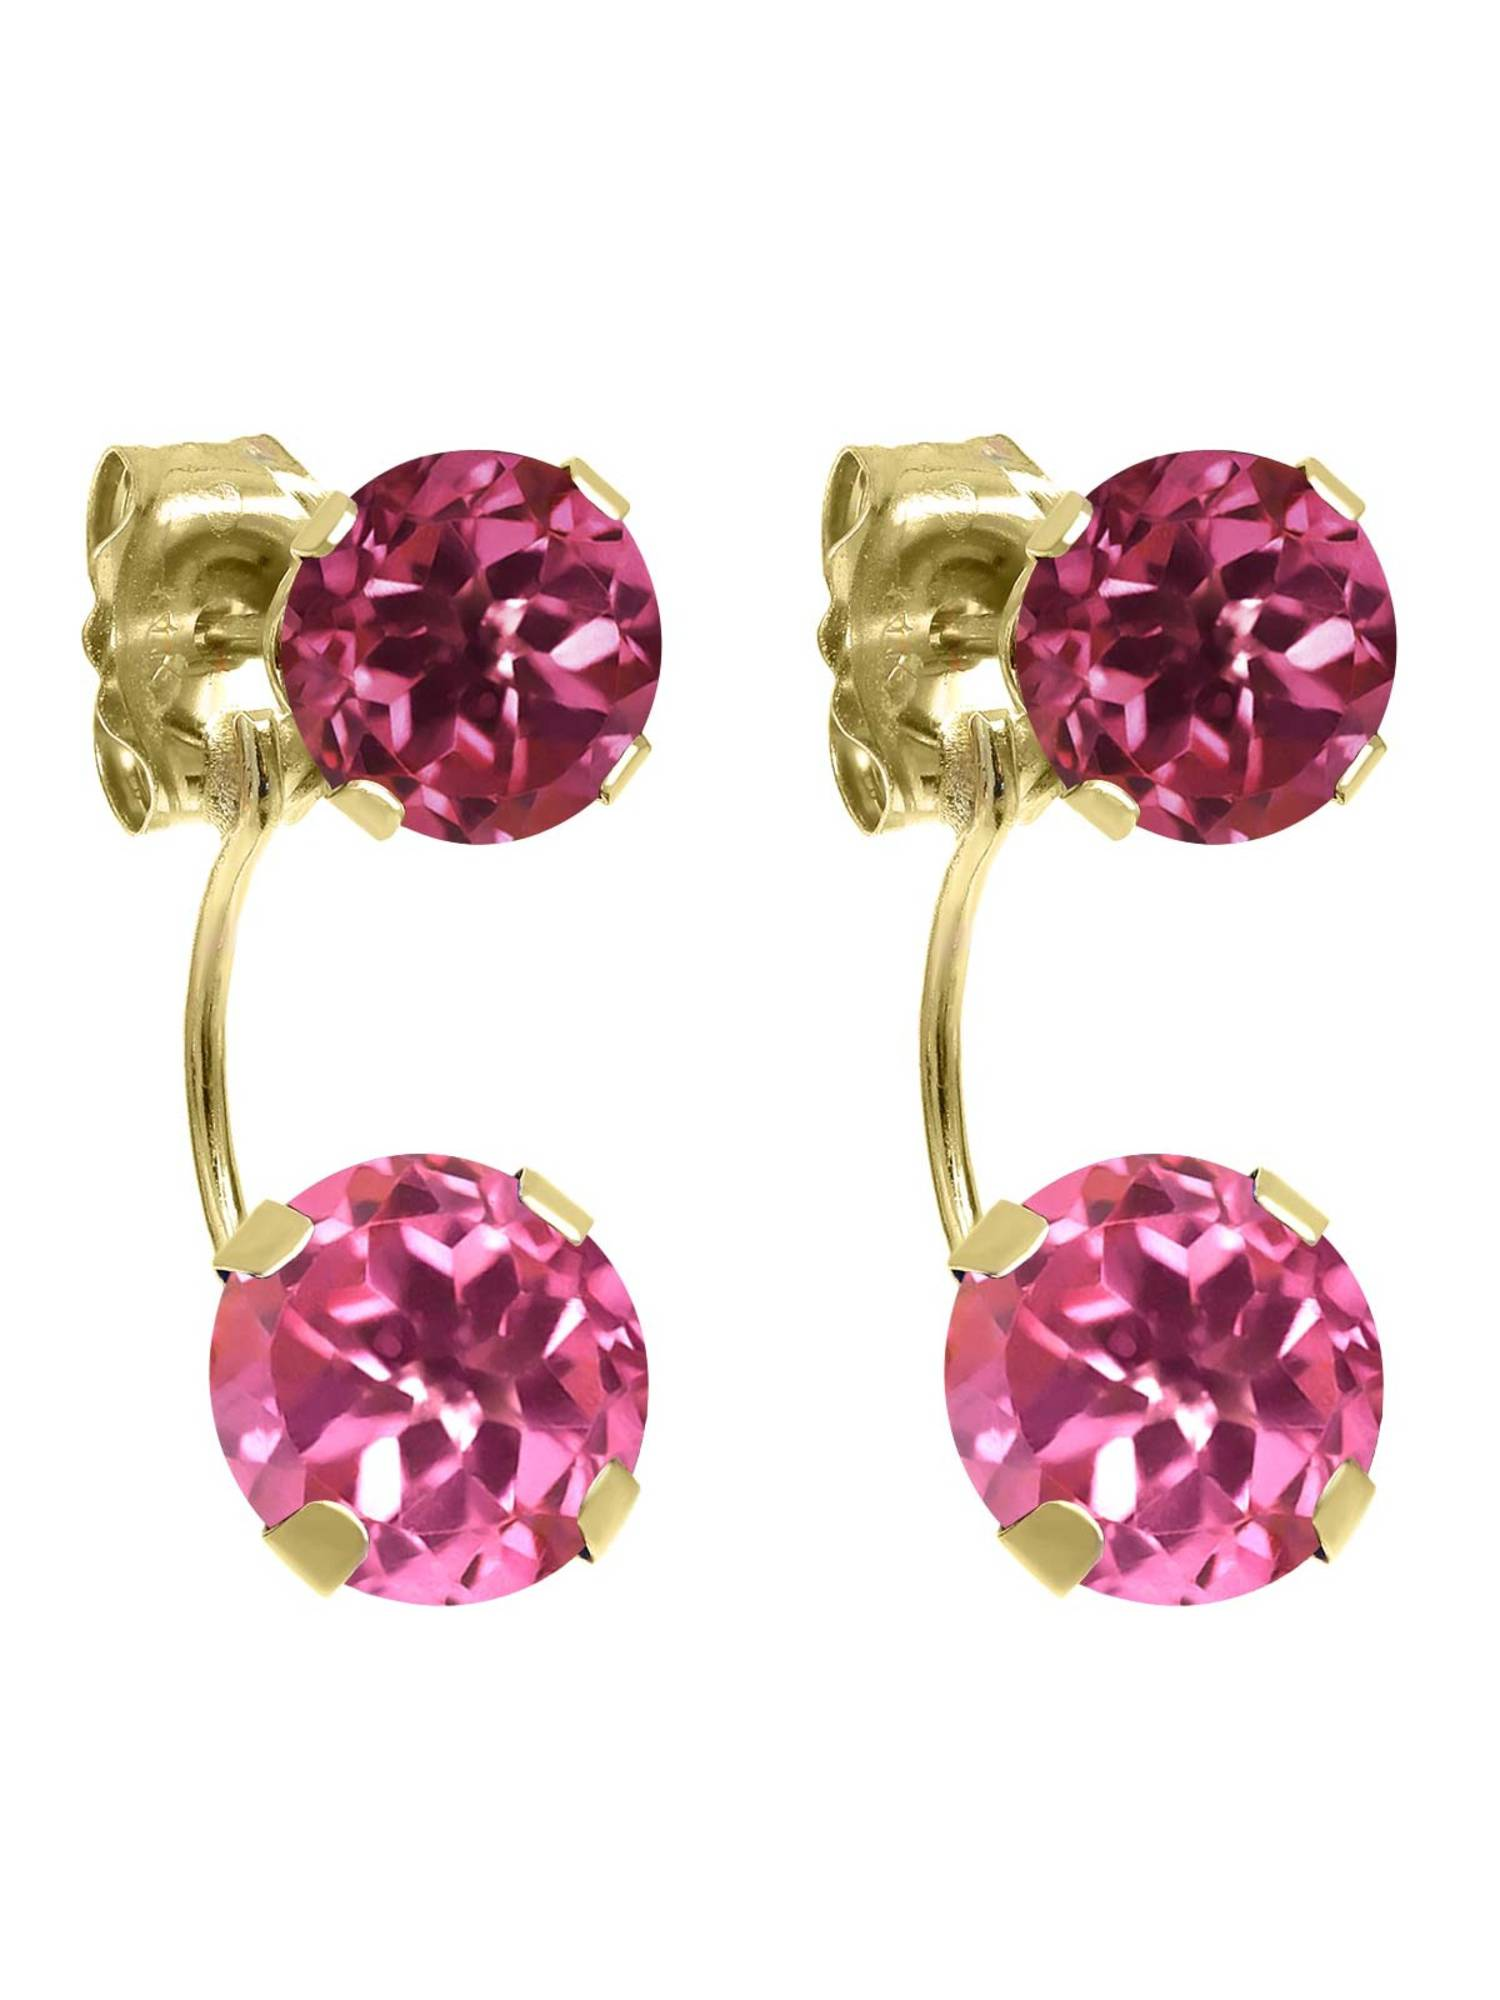 3.00 Ct Round Pink Mystic Topaz Pink Tourmaline 14K Yellow Gold Earrings by